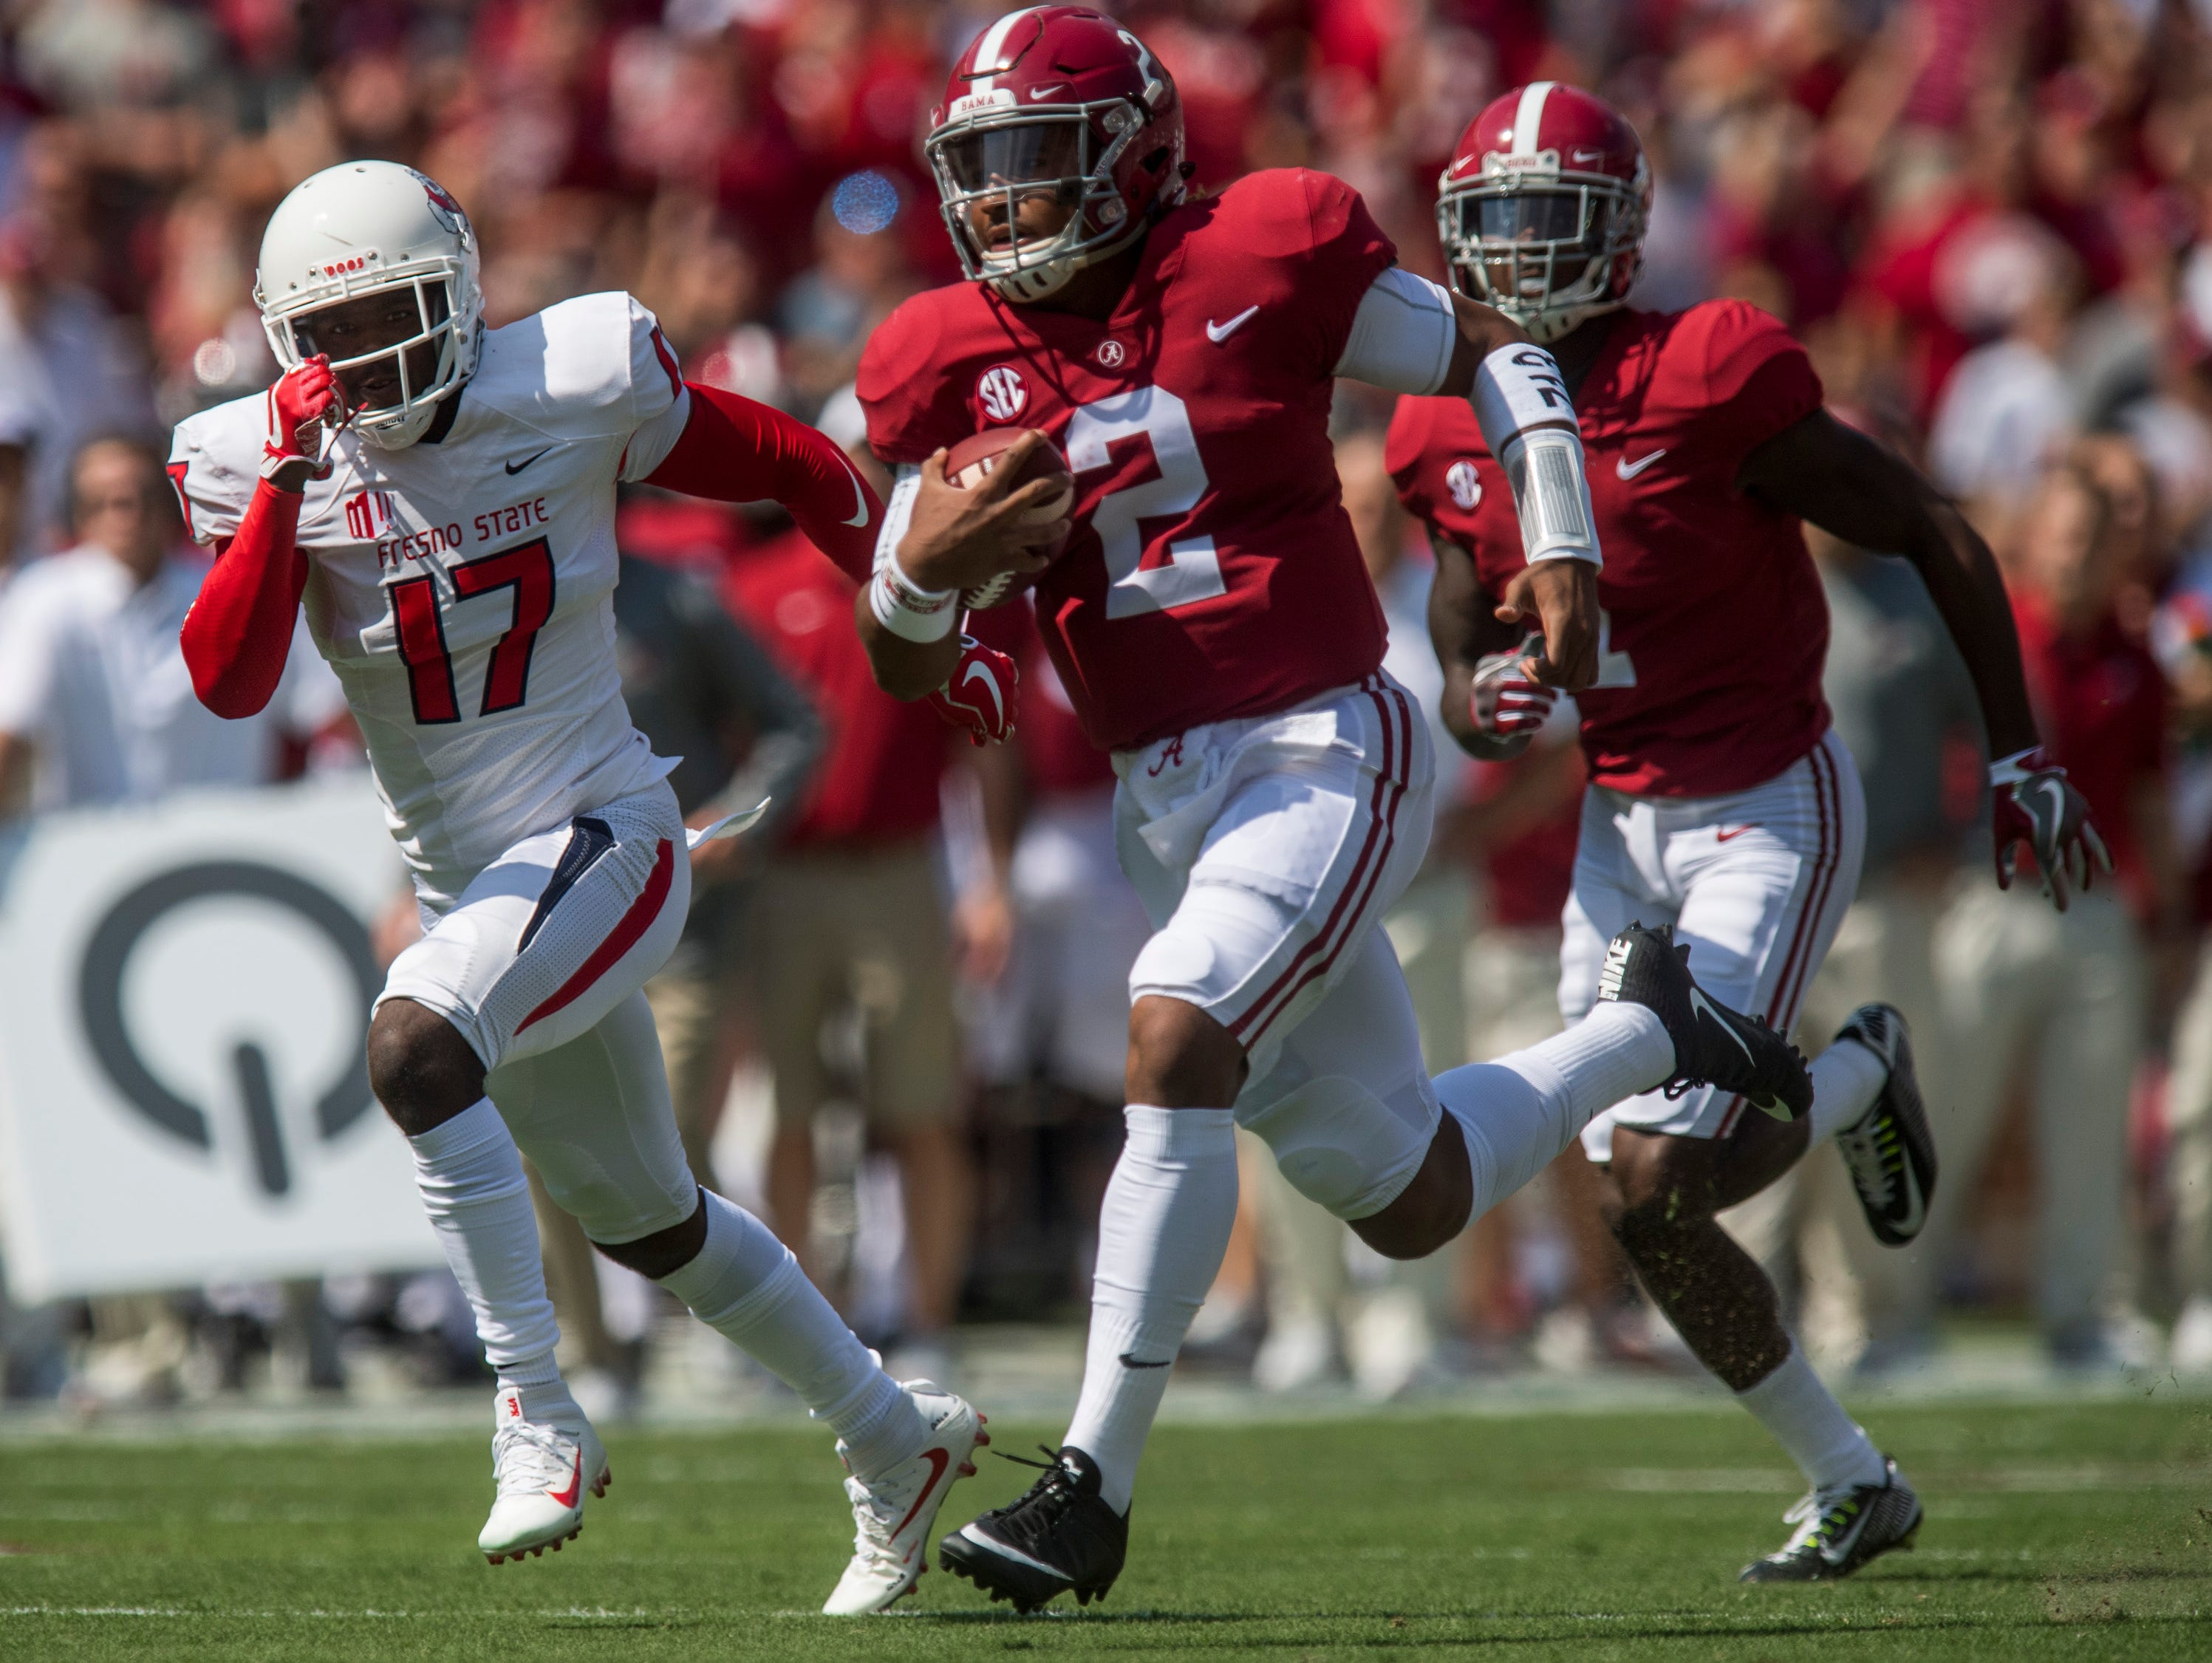 Alabama quarterback Jalen Hurts (2) gets by Fresno State defensive back Johnny Johnson, Jr. (17) for a first quarter touchdown at Bryant Denny Stadium in Tuscaloosa, Ala., on Saturday September 9, 2017. (Live from Tuscaloosa: Alabama vs. Colorado State.